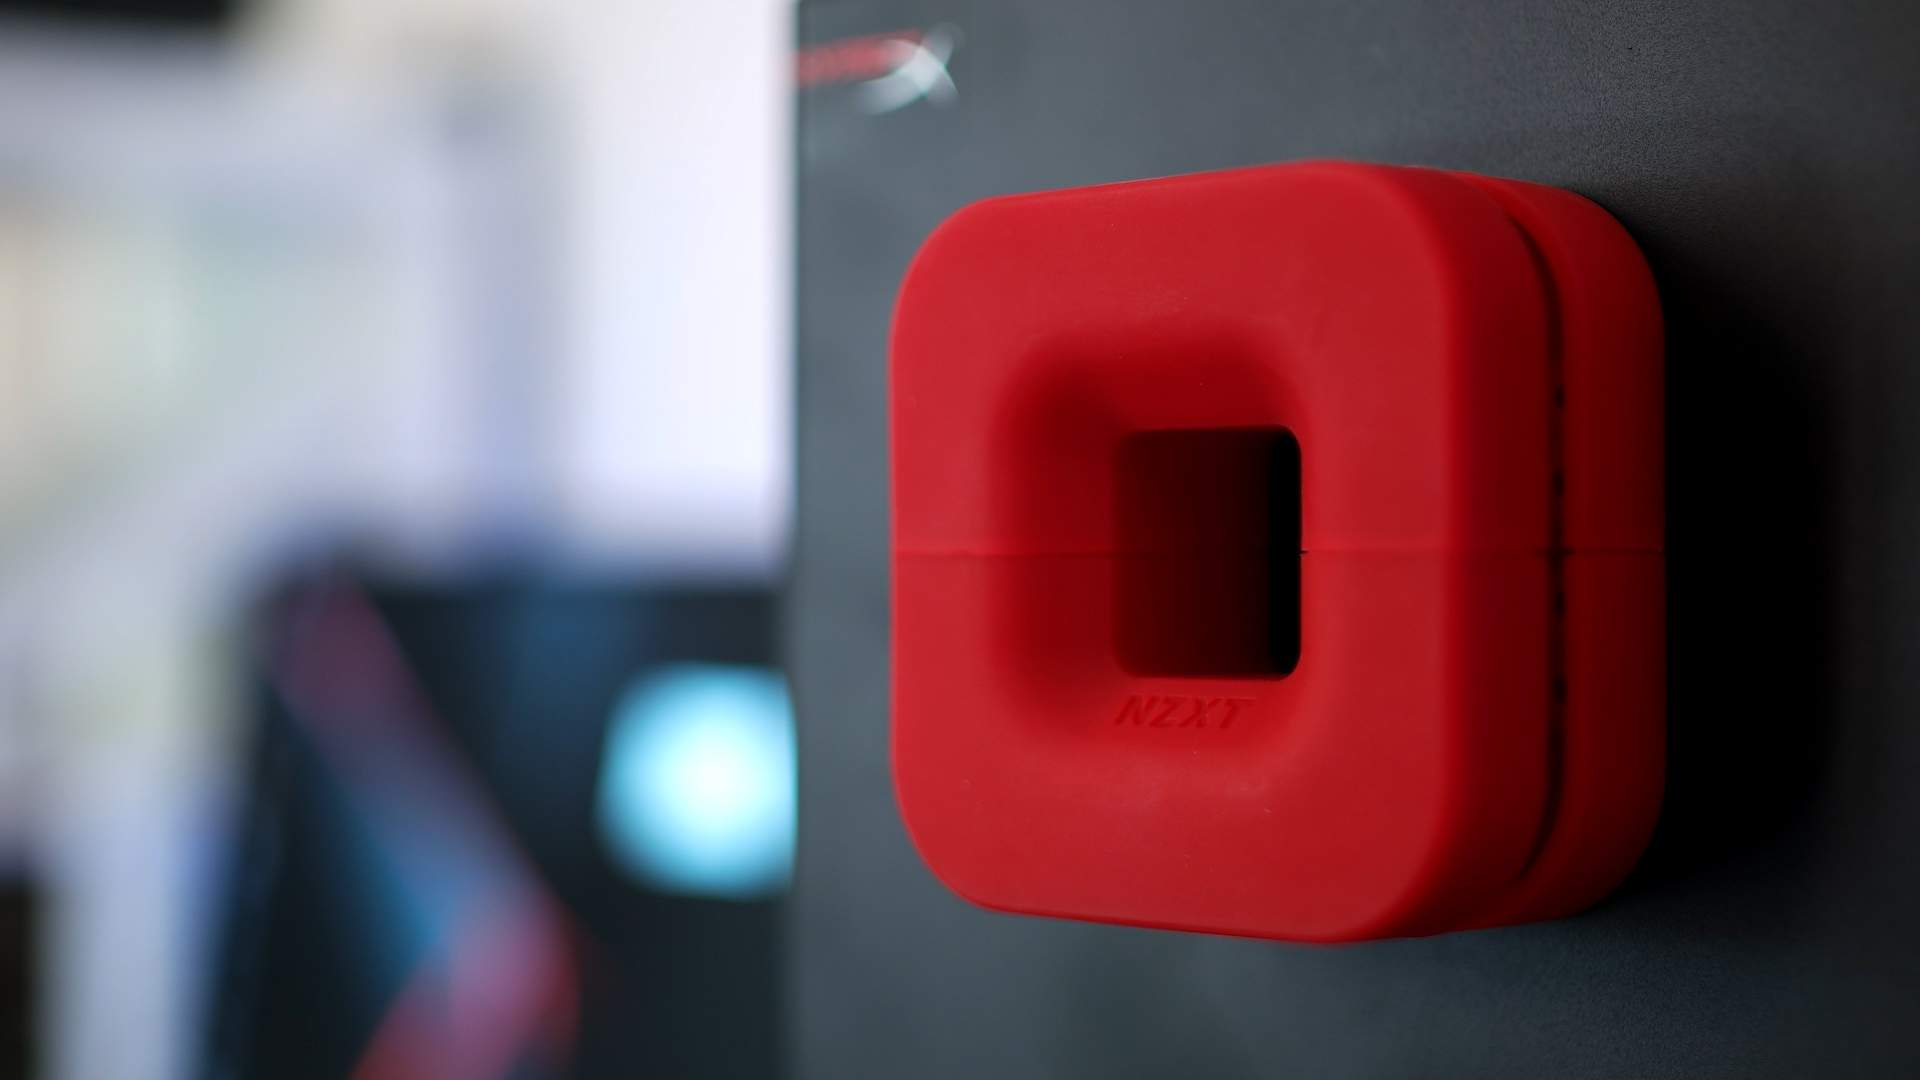 Magnete NZXT Puck recensione